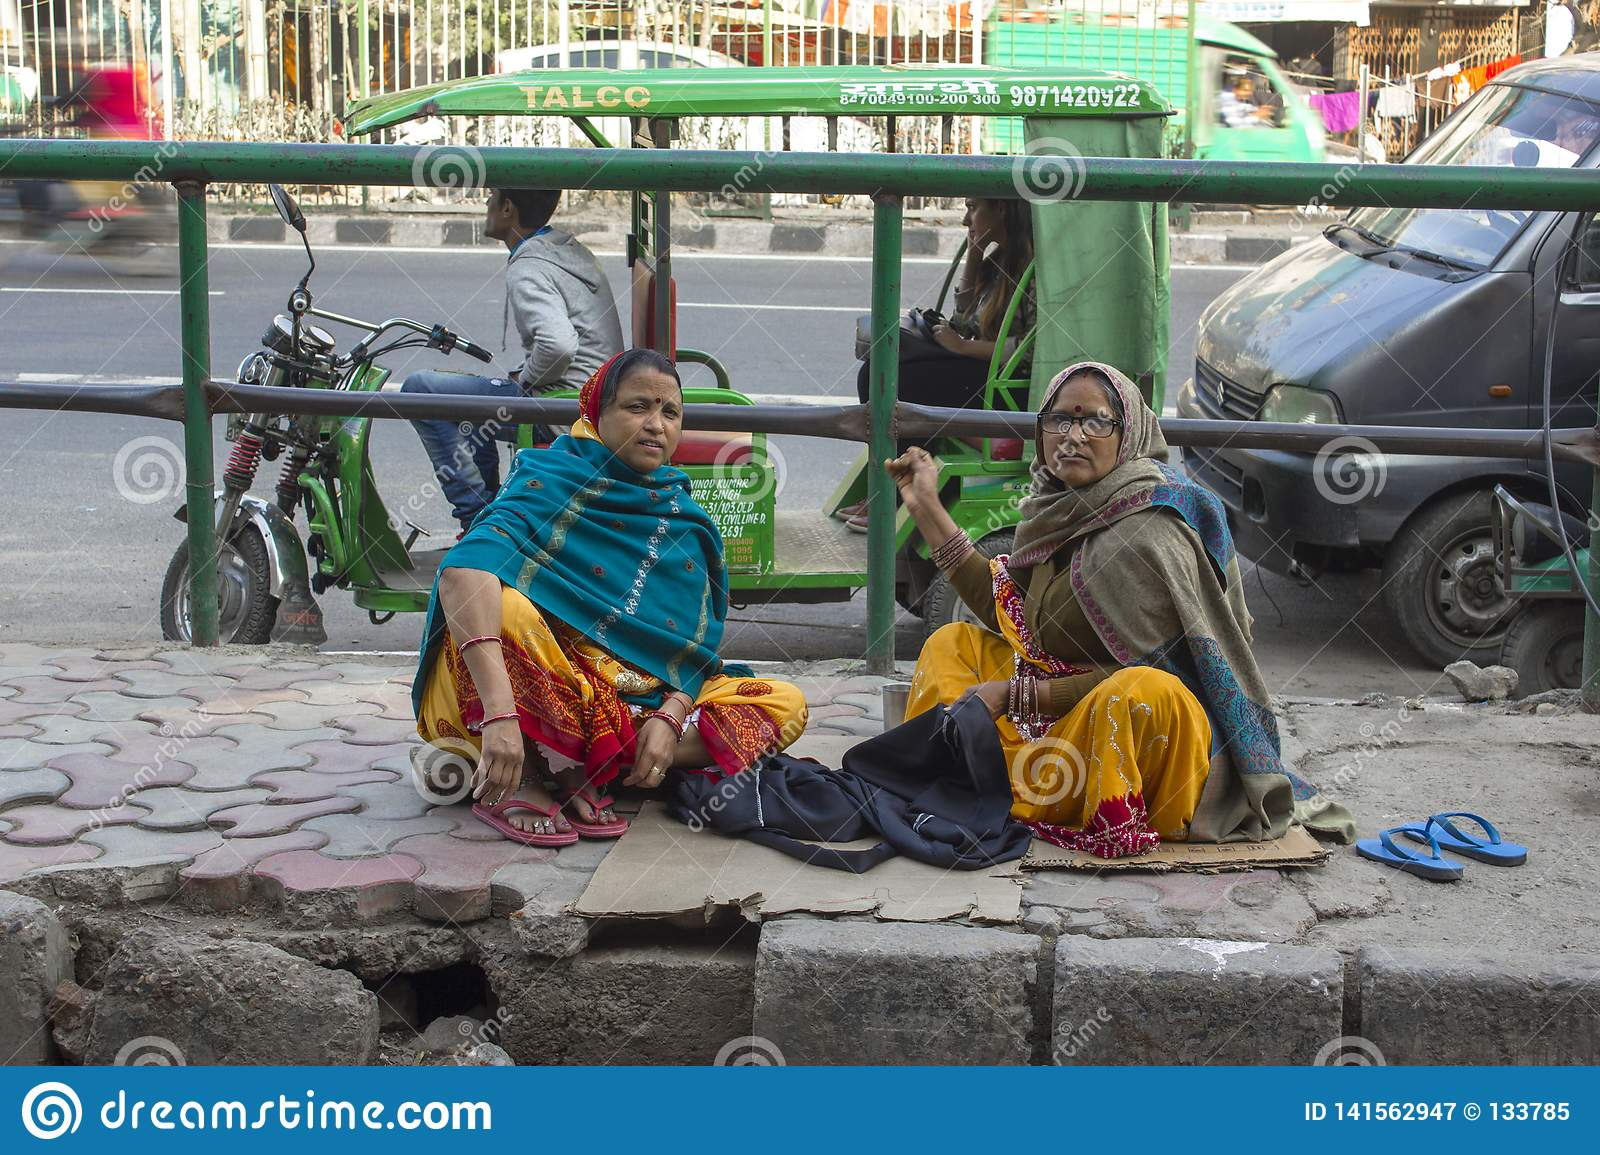 Indian adult women sew clothes sitting on the sidewalk against the backdrop of urban traffic